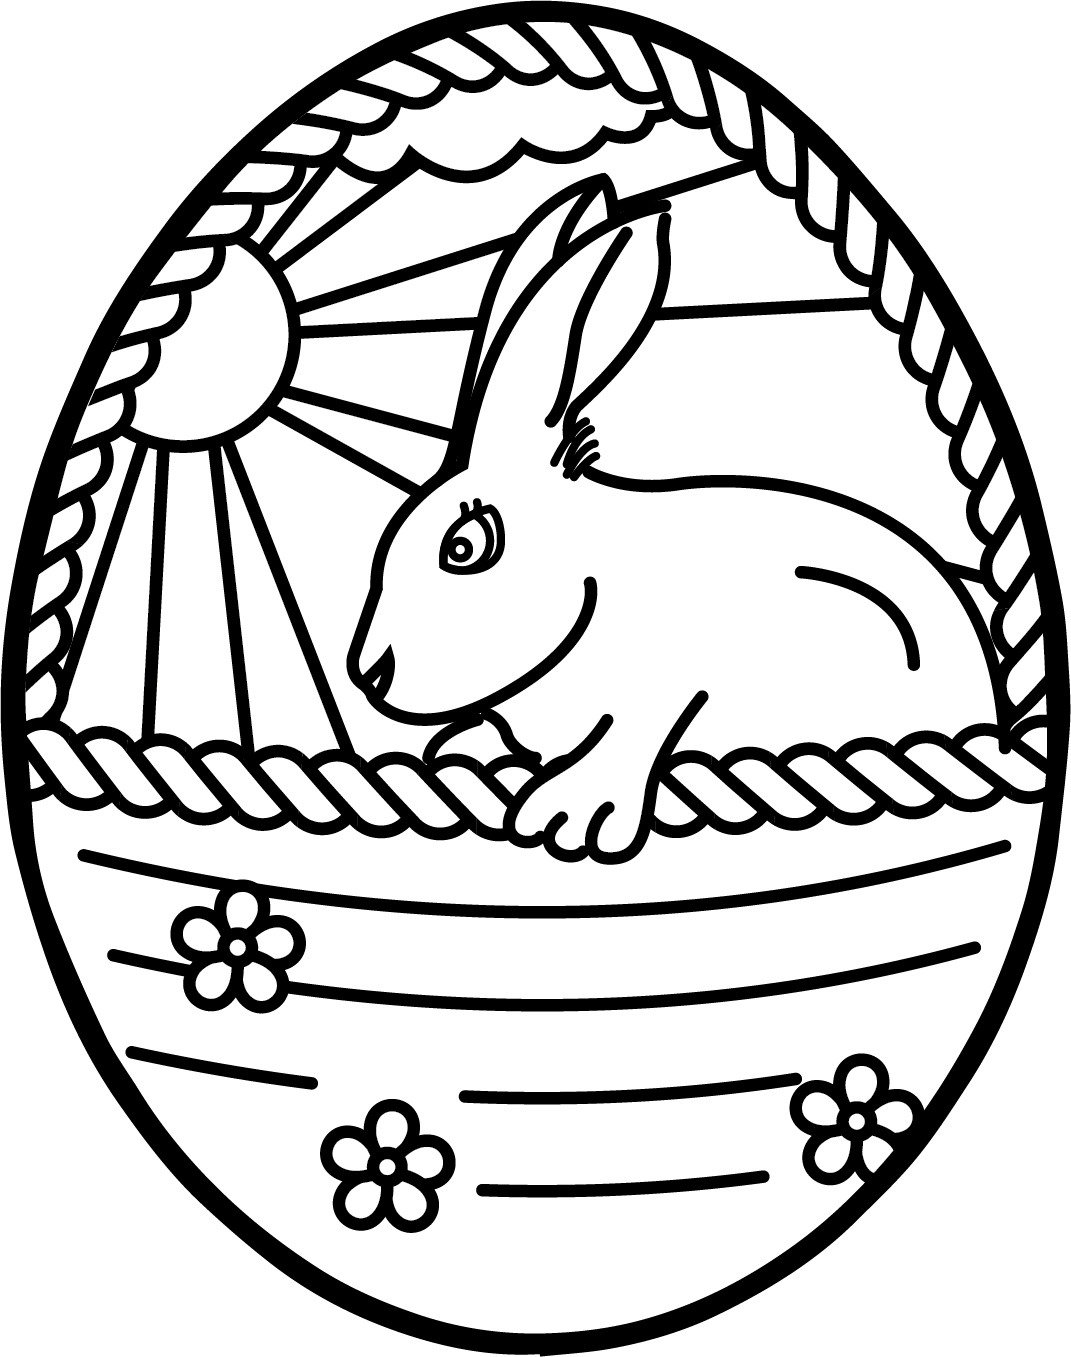 easter eggs coloring page top 25 free printable easter egg coloring pages online page coloring eggs easter